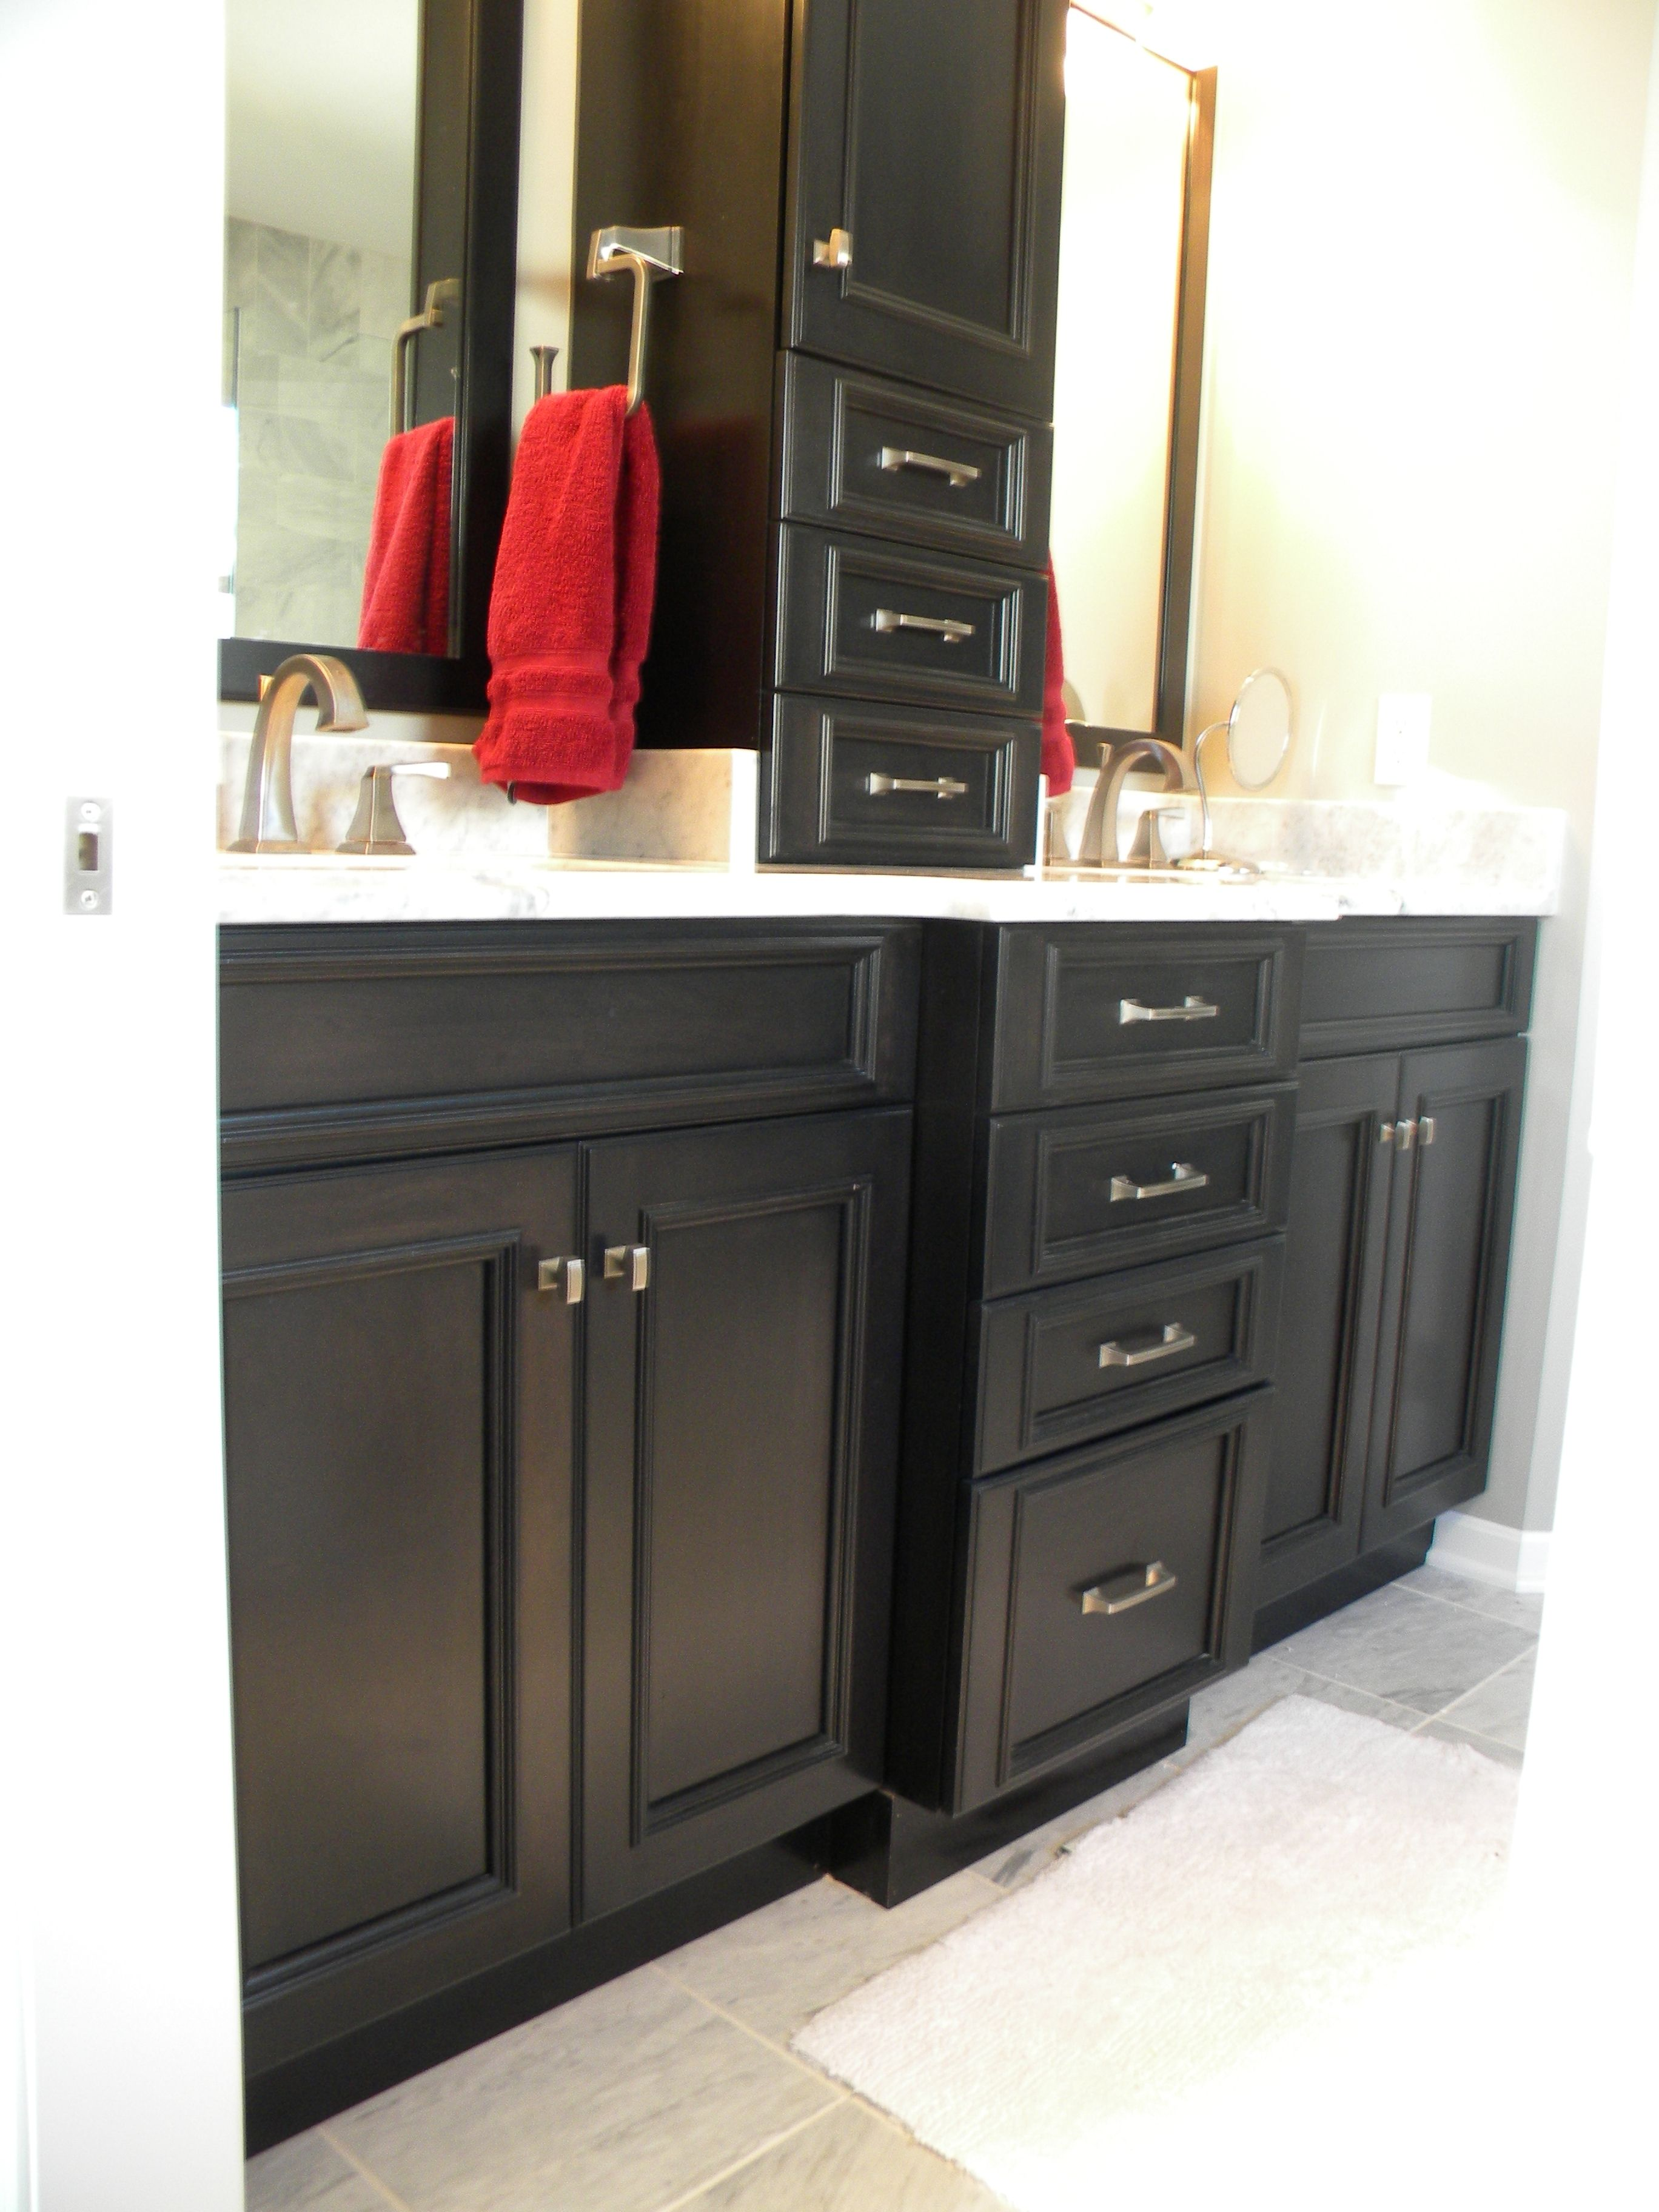 Holiday Kitchens Cabinets In A Knight Finish With Lincoln Door Brilliant Bathroom Remodeling Columbus Inspiration